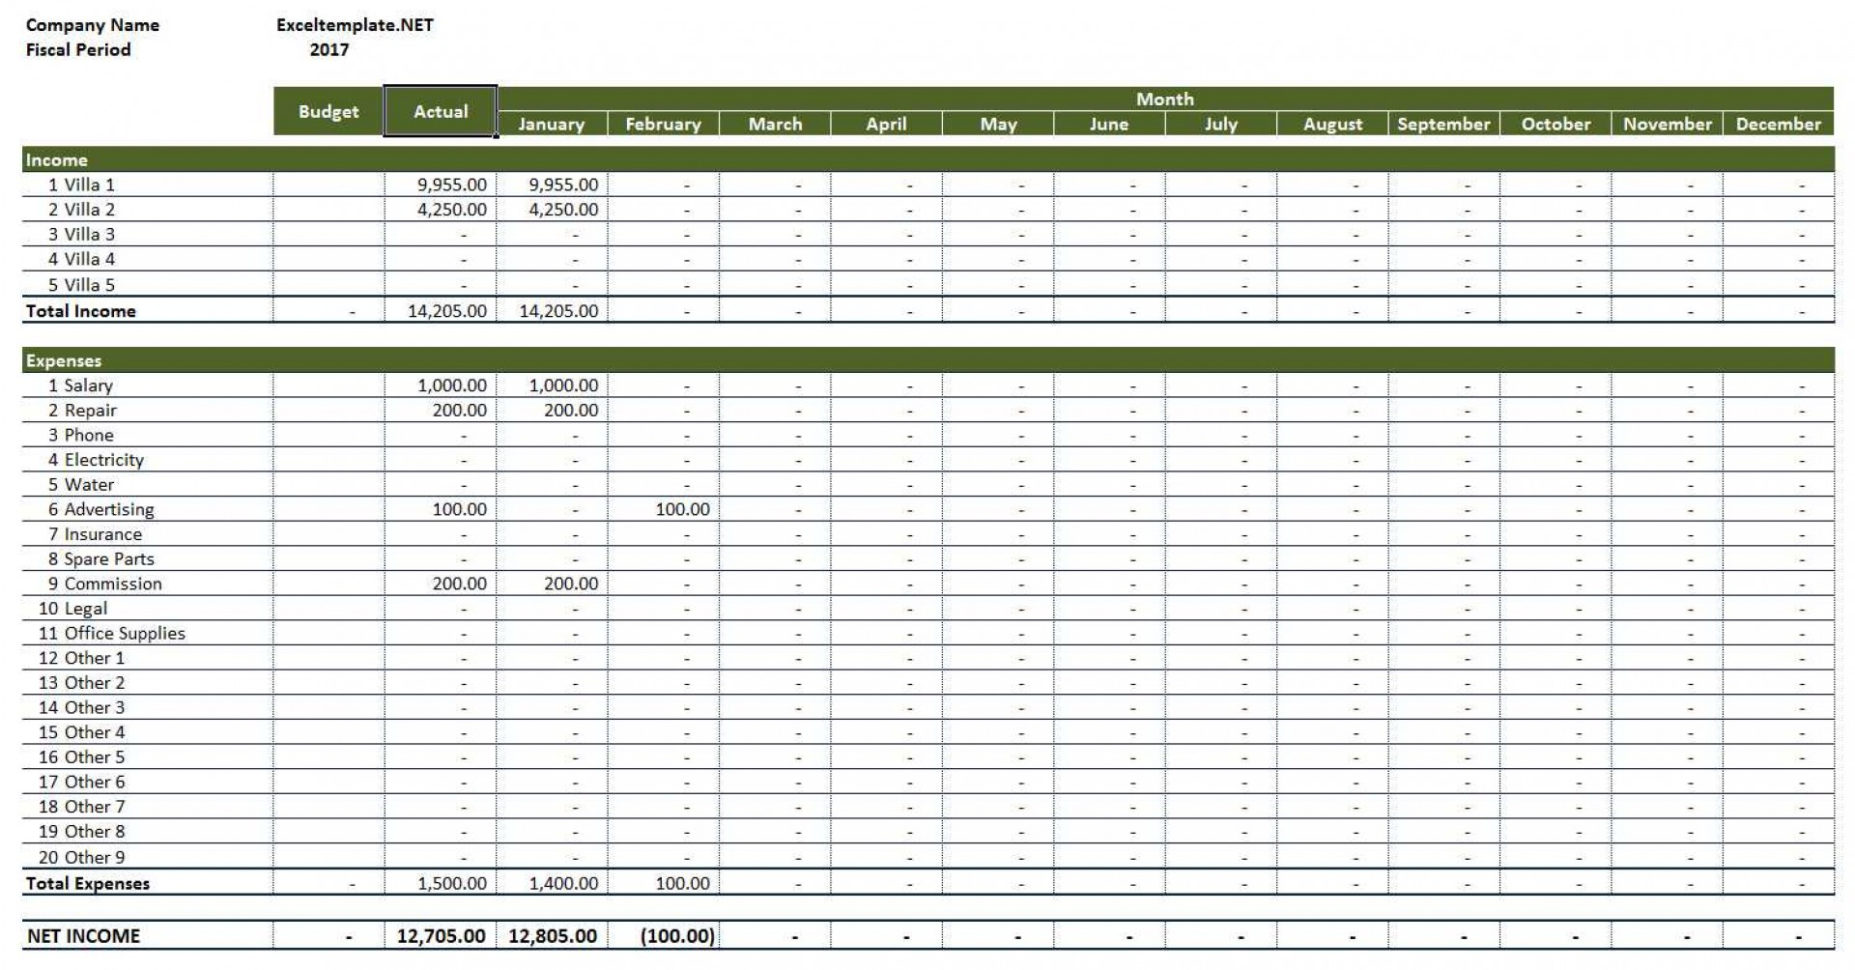 Income Expense Spreadsheet For Rental Property In 008 Template Ideas Income Expenses Spreadsheet Expense Manager Excel